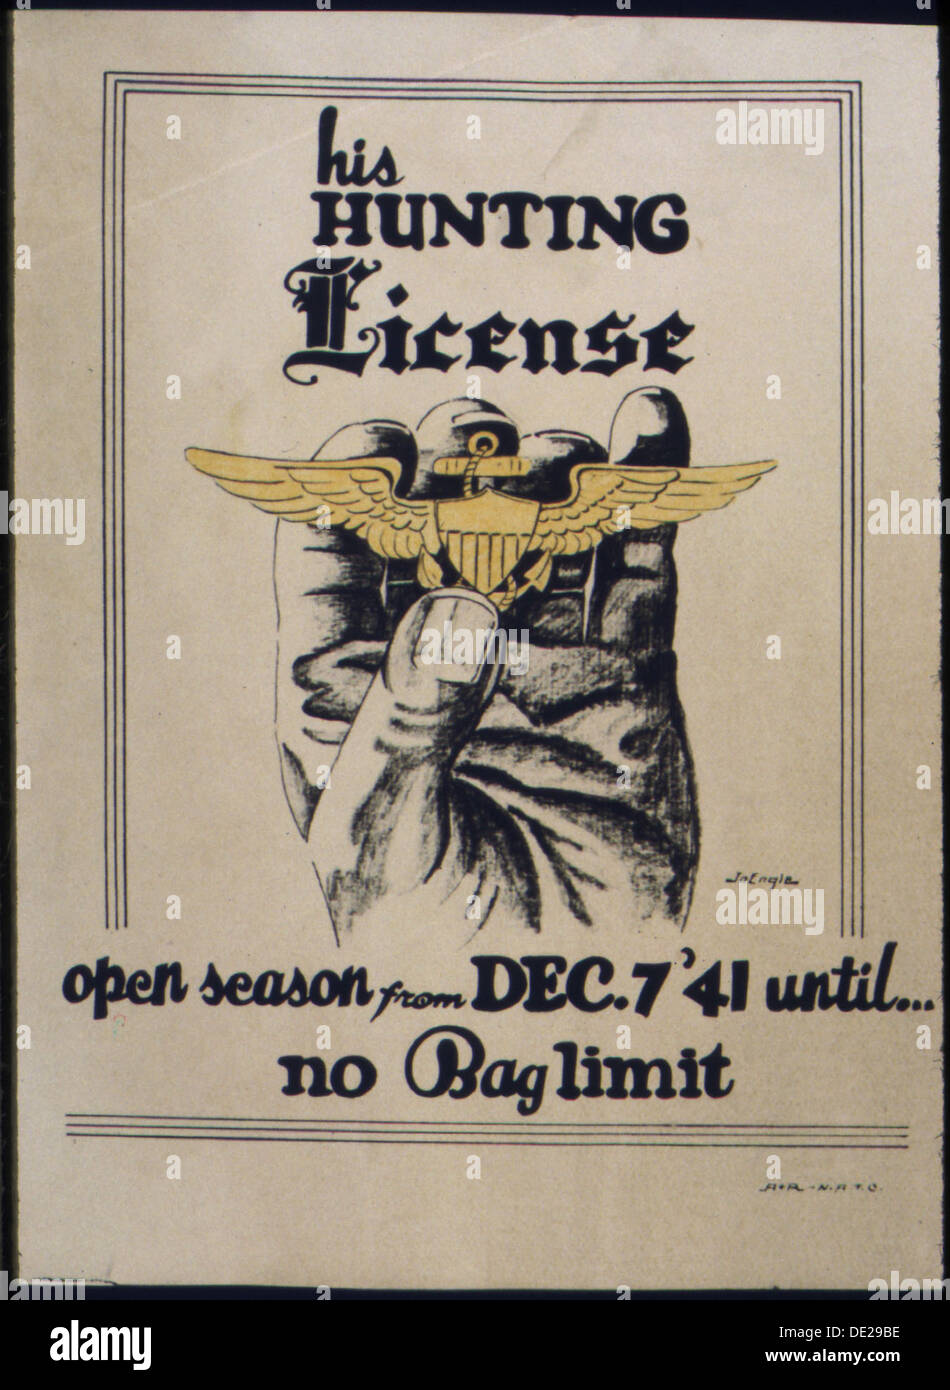 His hunting license. Open season from Dec. 7 6041 until... no bag limit. 535187 - Stock Image